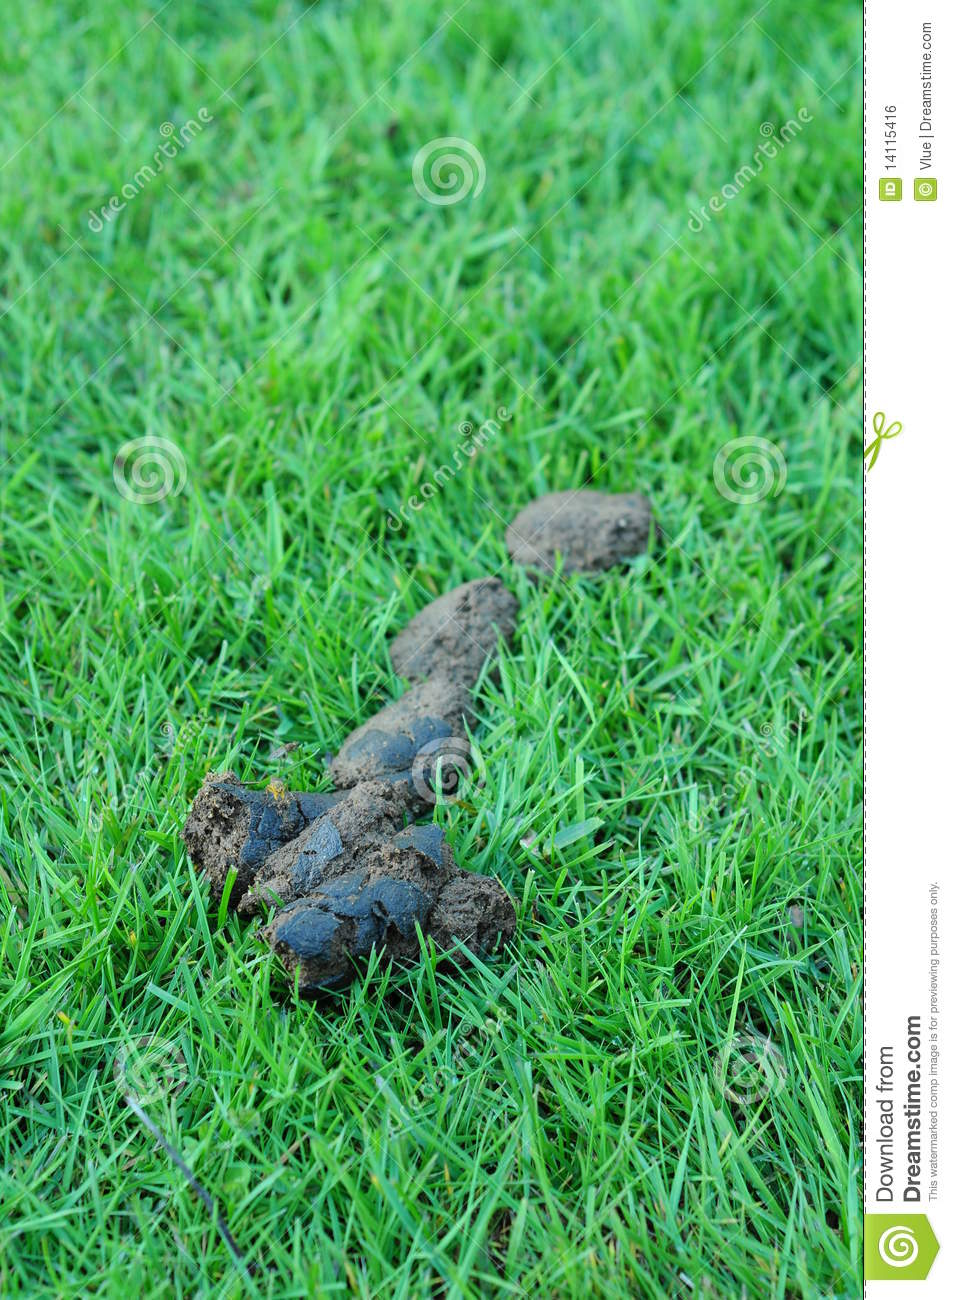 dog poop on grass royalty free stock image image 14115416